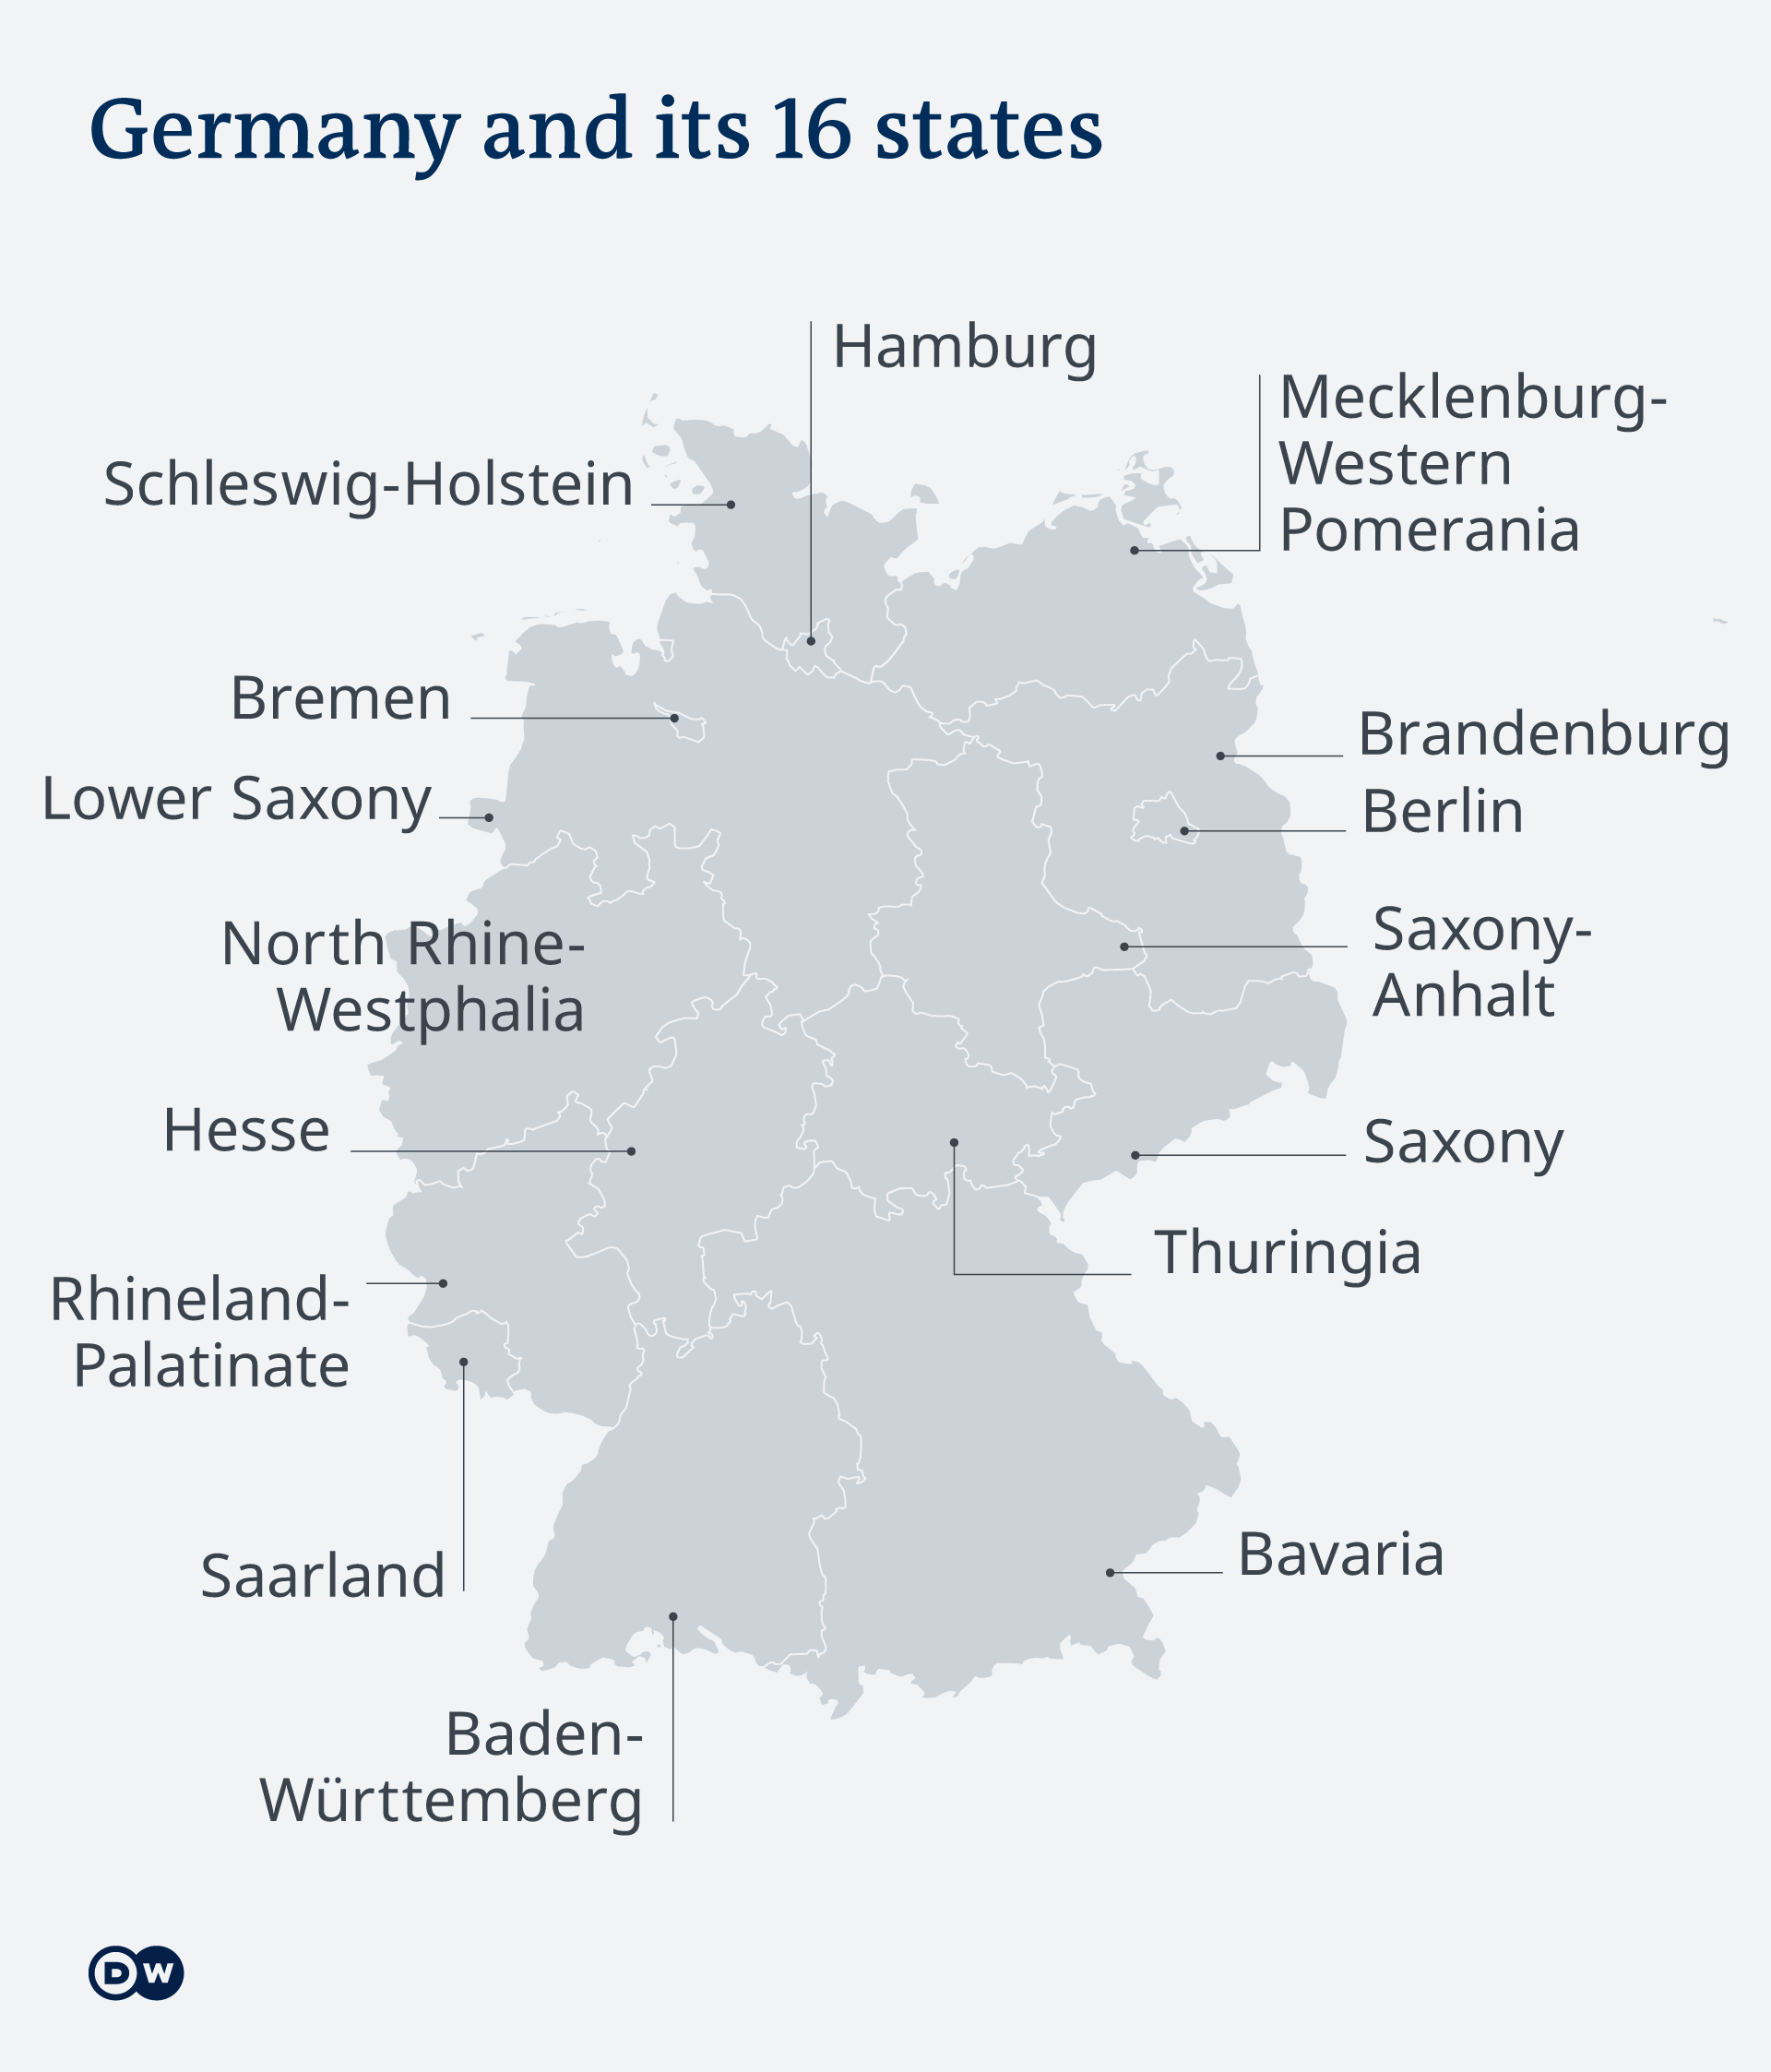 Map of Germany and its 16 states